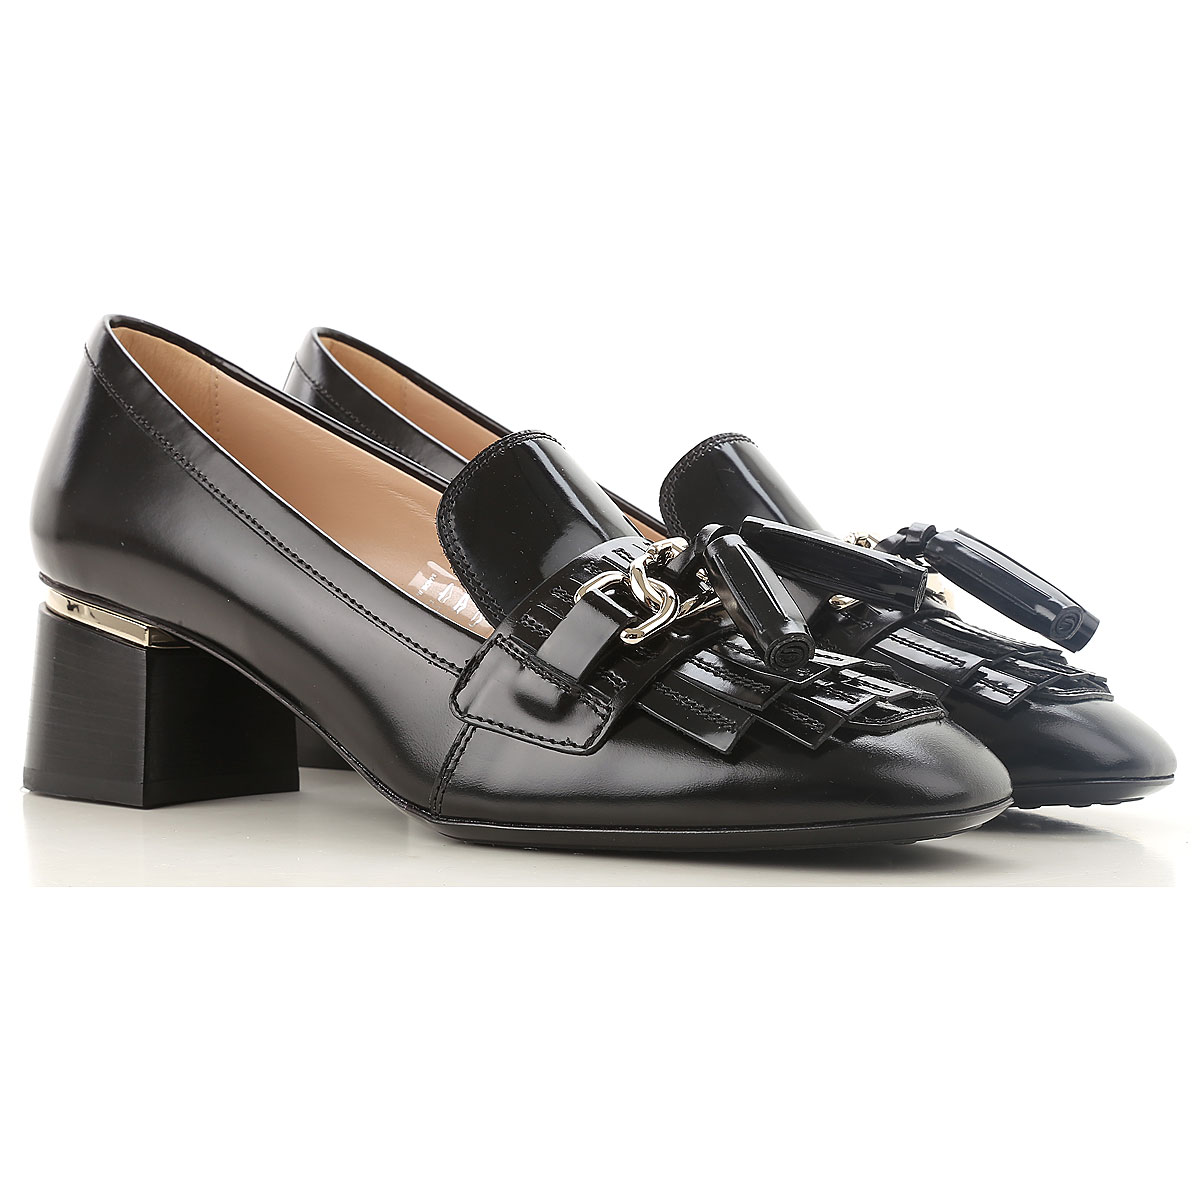 Tods Pumps & High Heels for Women in Outlet Black USA - GOOFASH